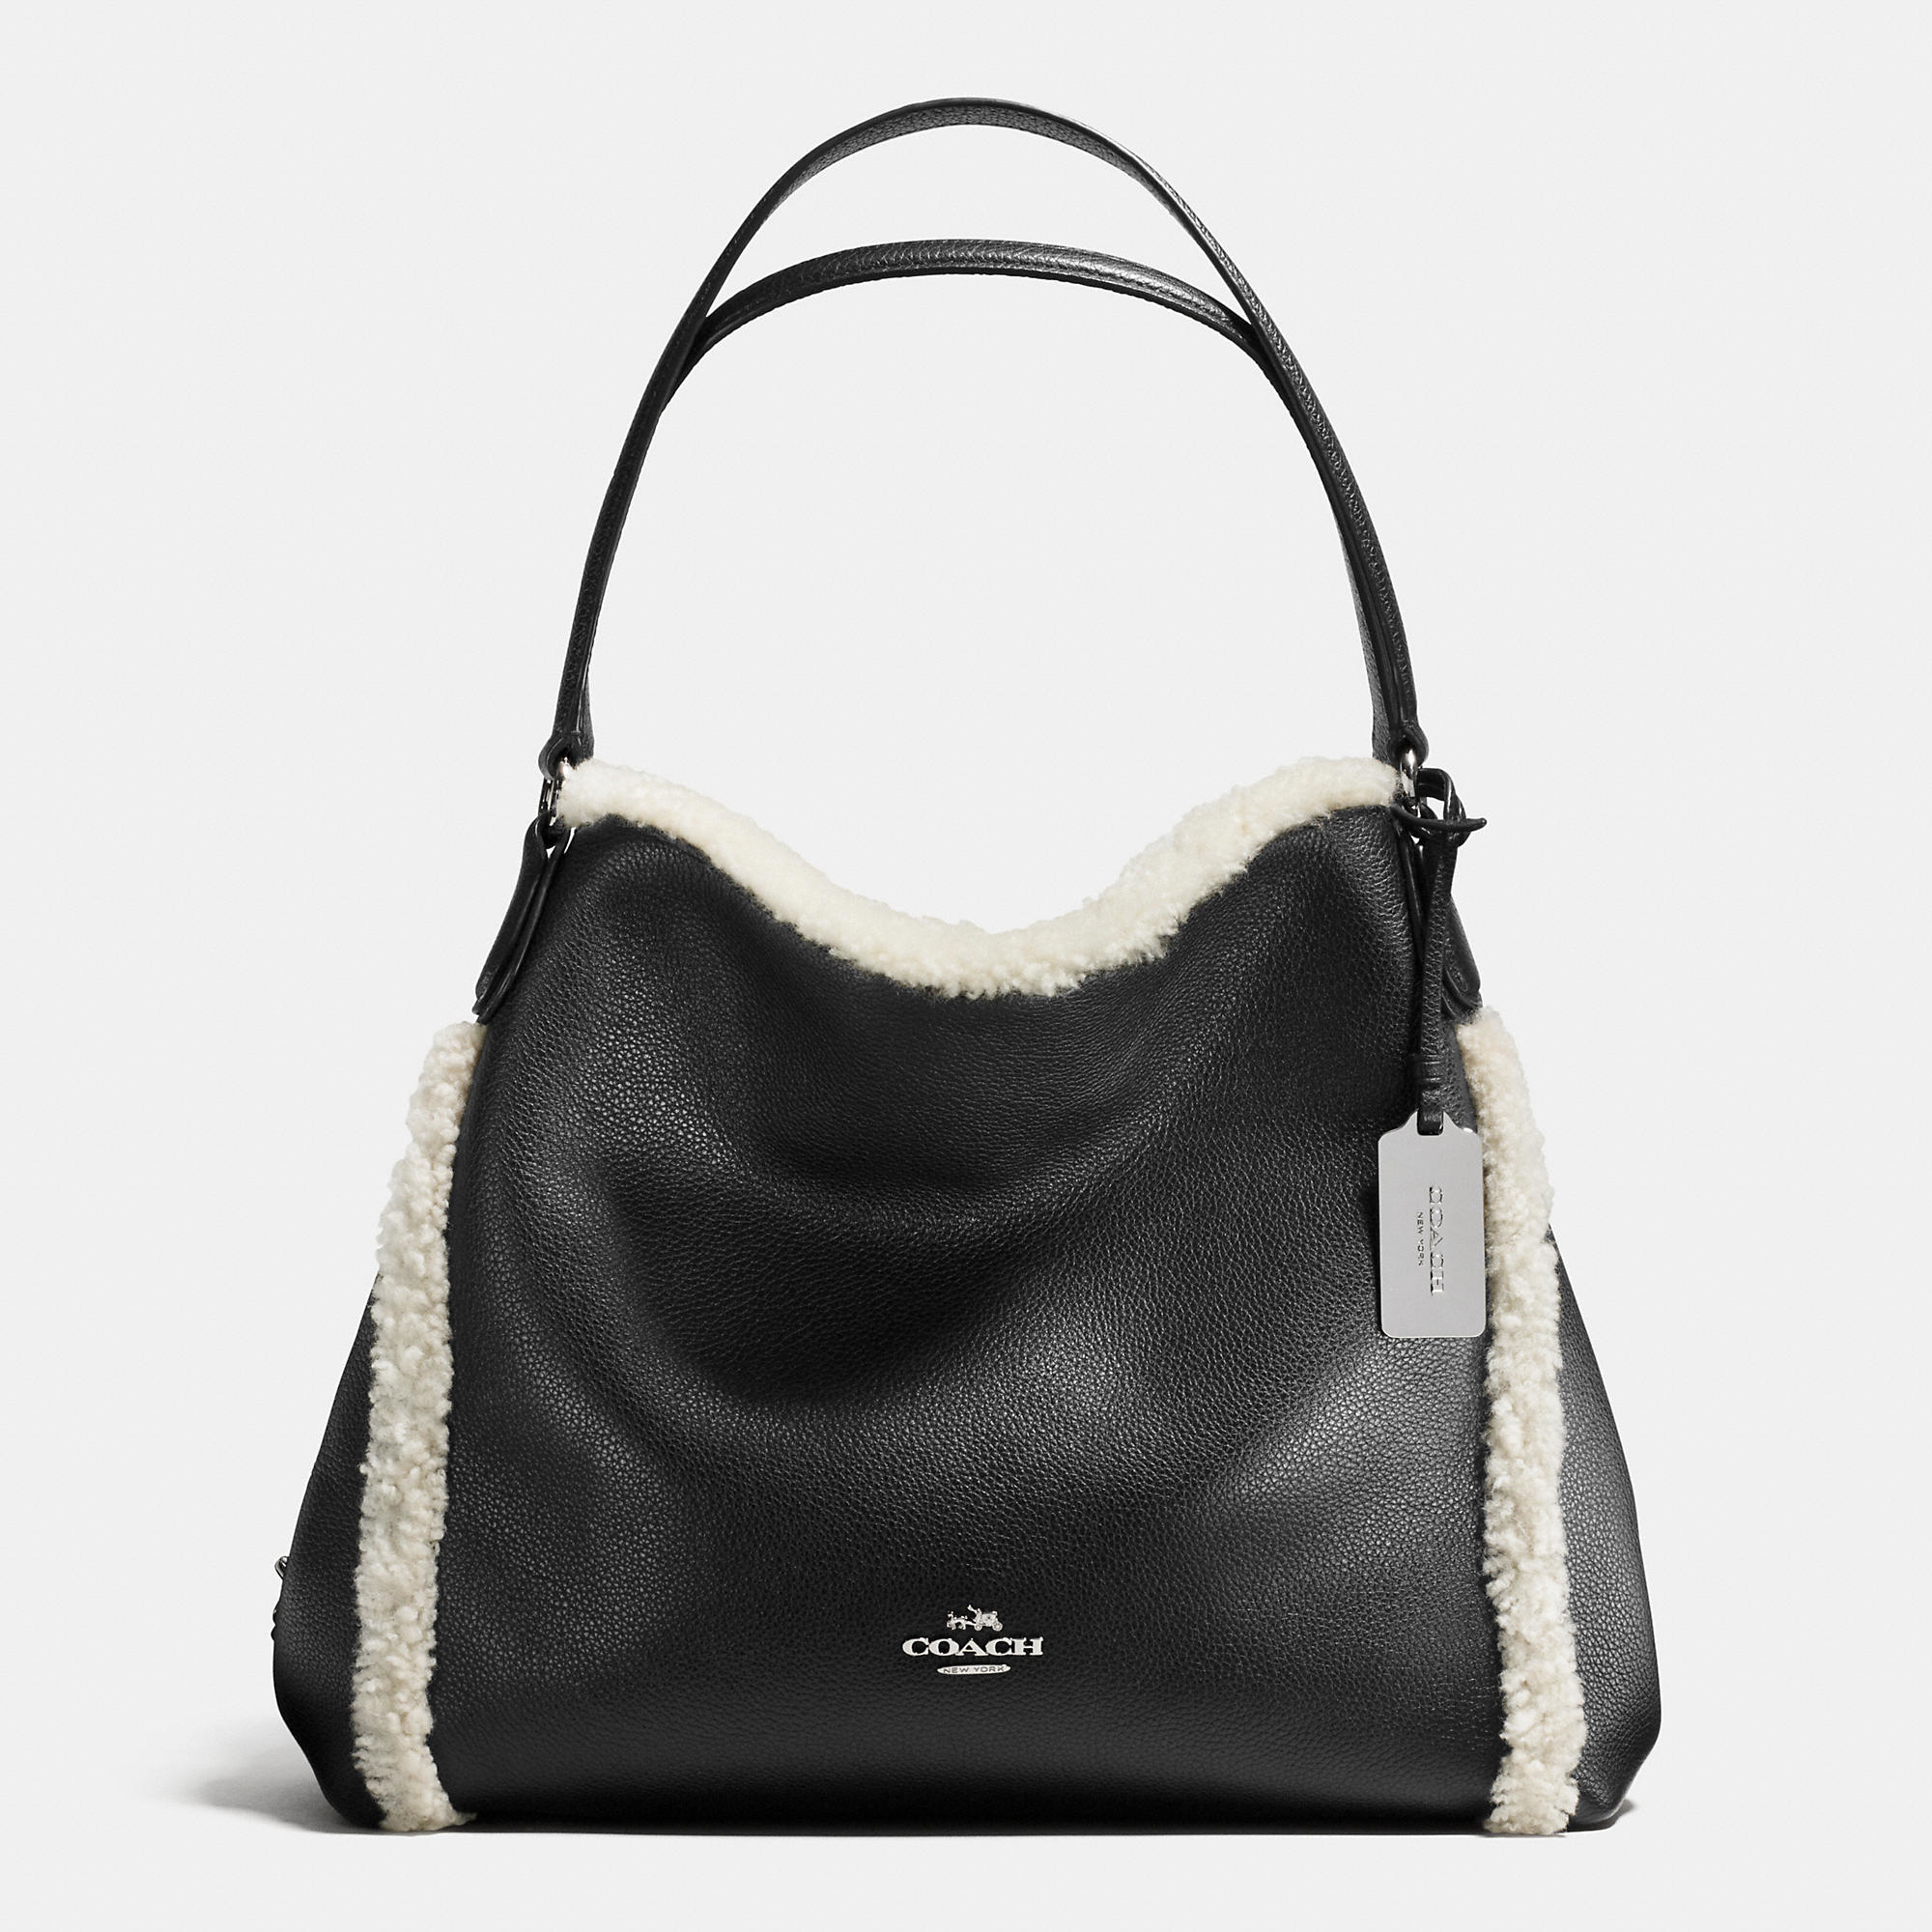 coach bag black and gray 4k0z  Gallery Women's Coach Edie Women's Shearling Bags